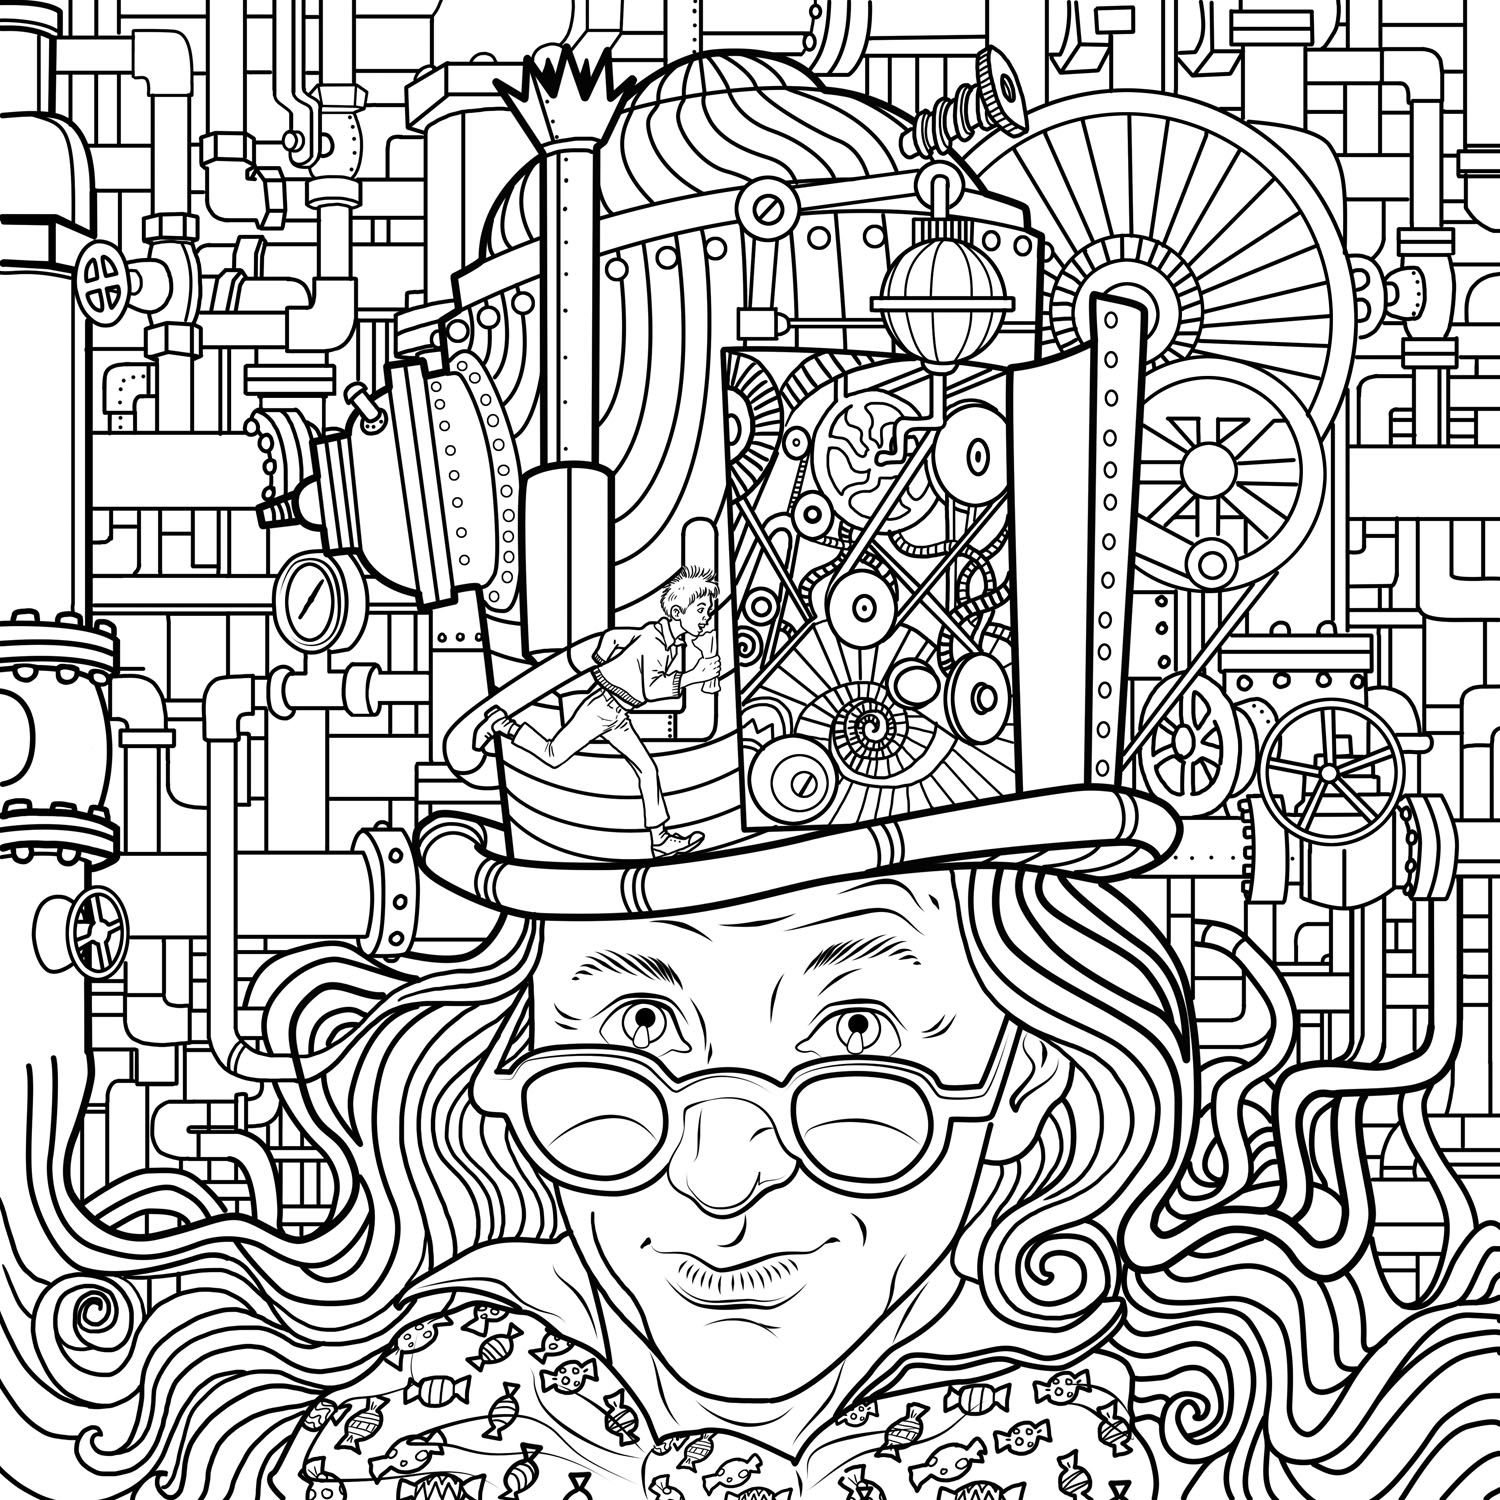 I Was Commissioned To Illustrate The Roald Dahl A Roald Dahl Colouring Pages